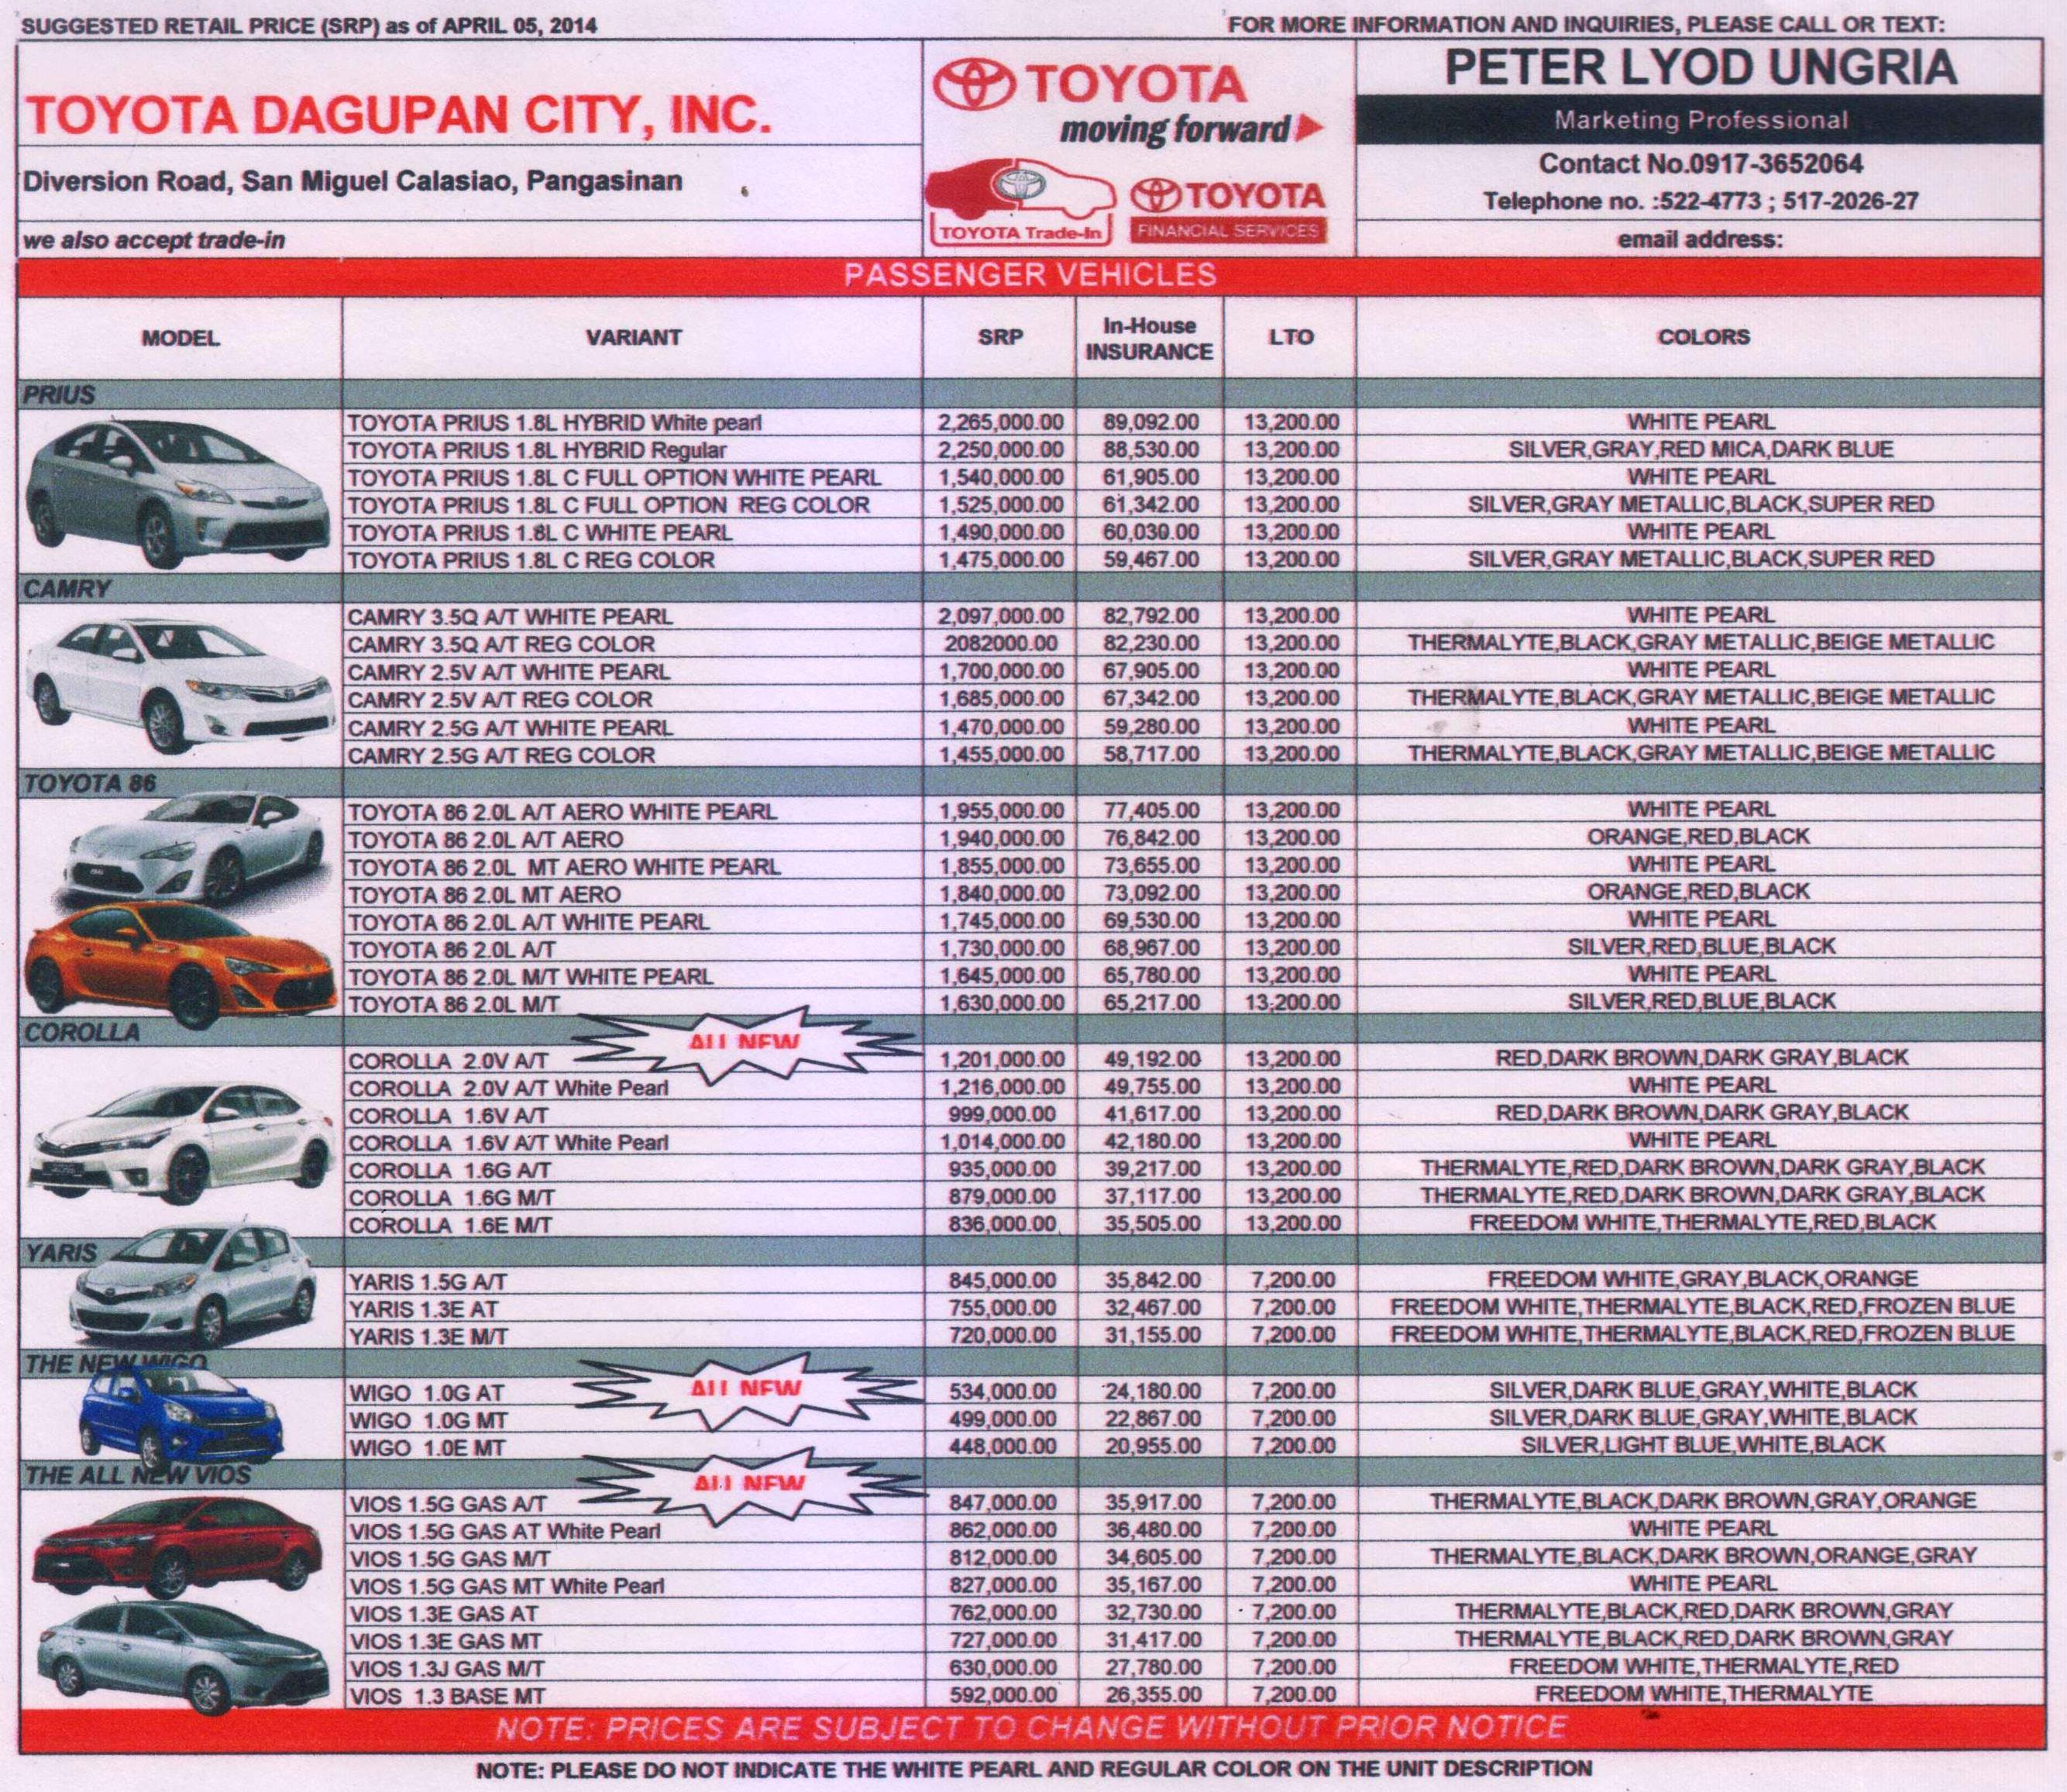 2014 Toyota Fortuner Philippines Price List | 2017 - 2018 Cars Reviews